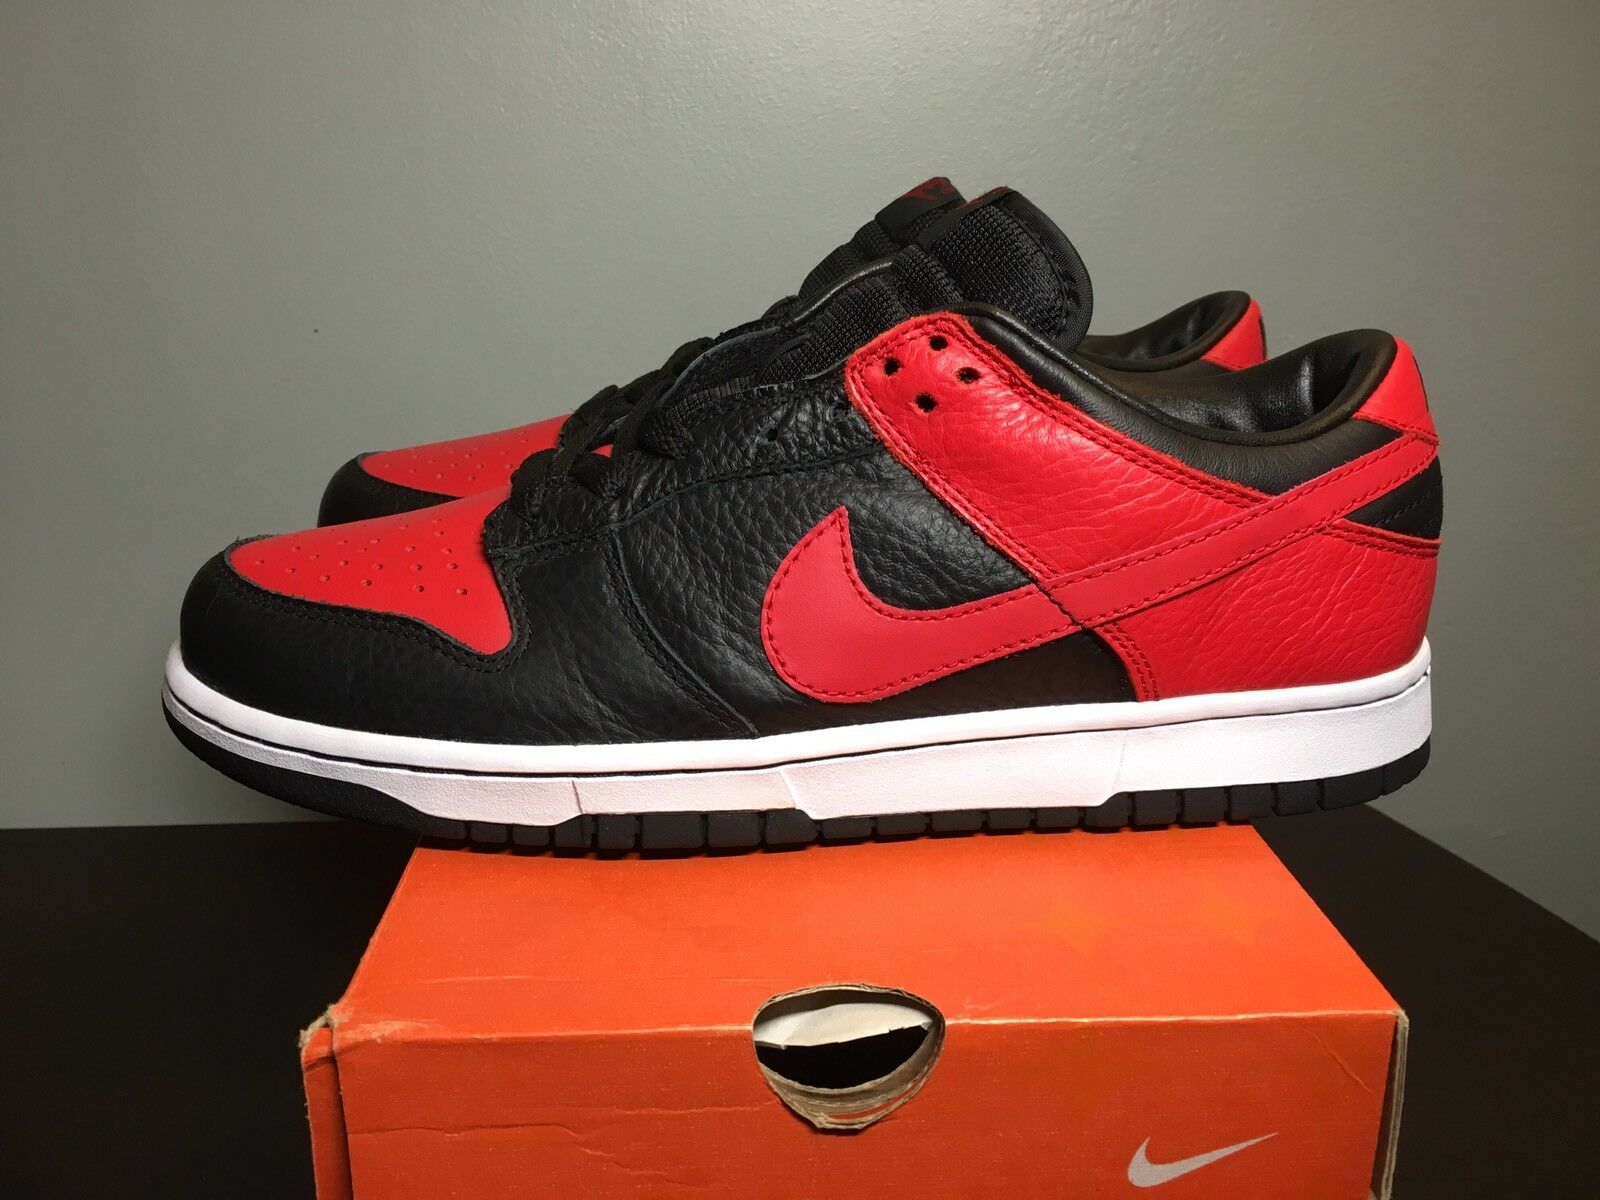 RARE 2018 Nike Dunk Low Black Red JD Sports Exclusive Bred 304714-062 Comfortable New shoes for men and women, limited time discount